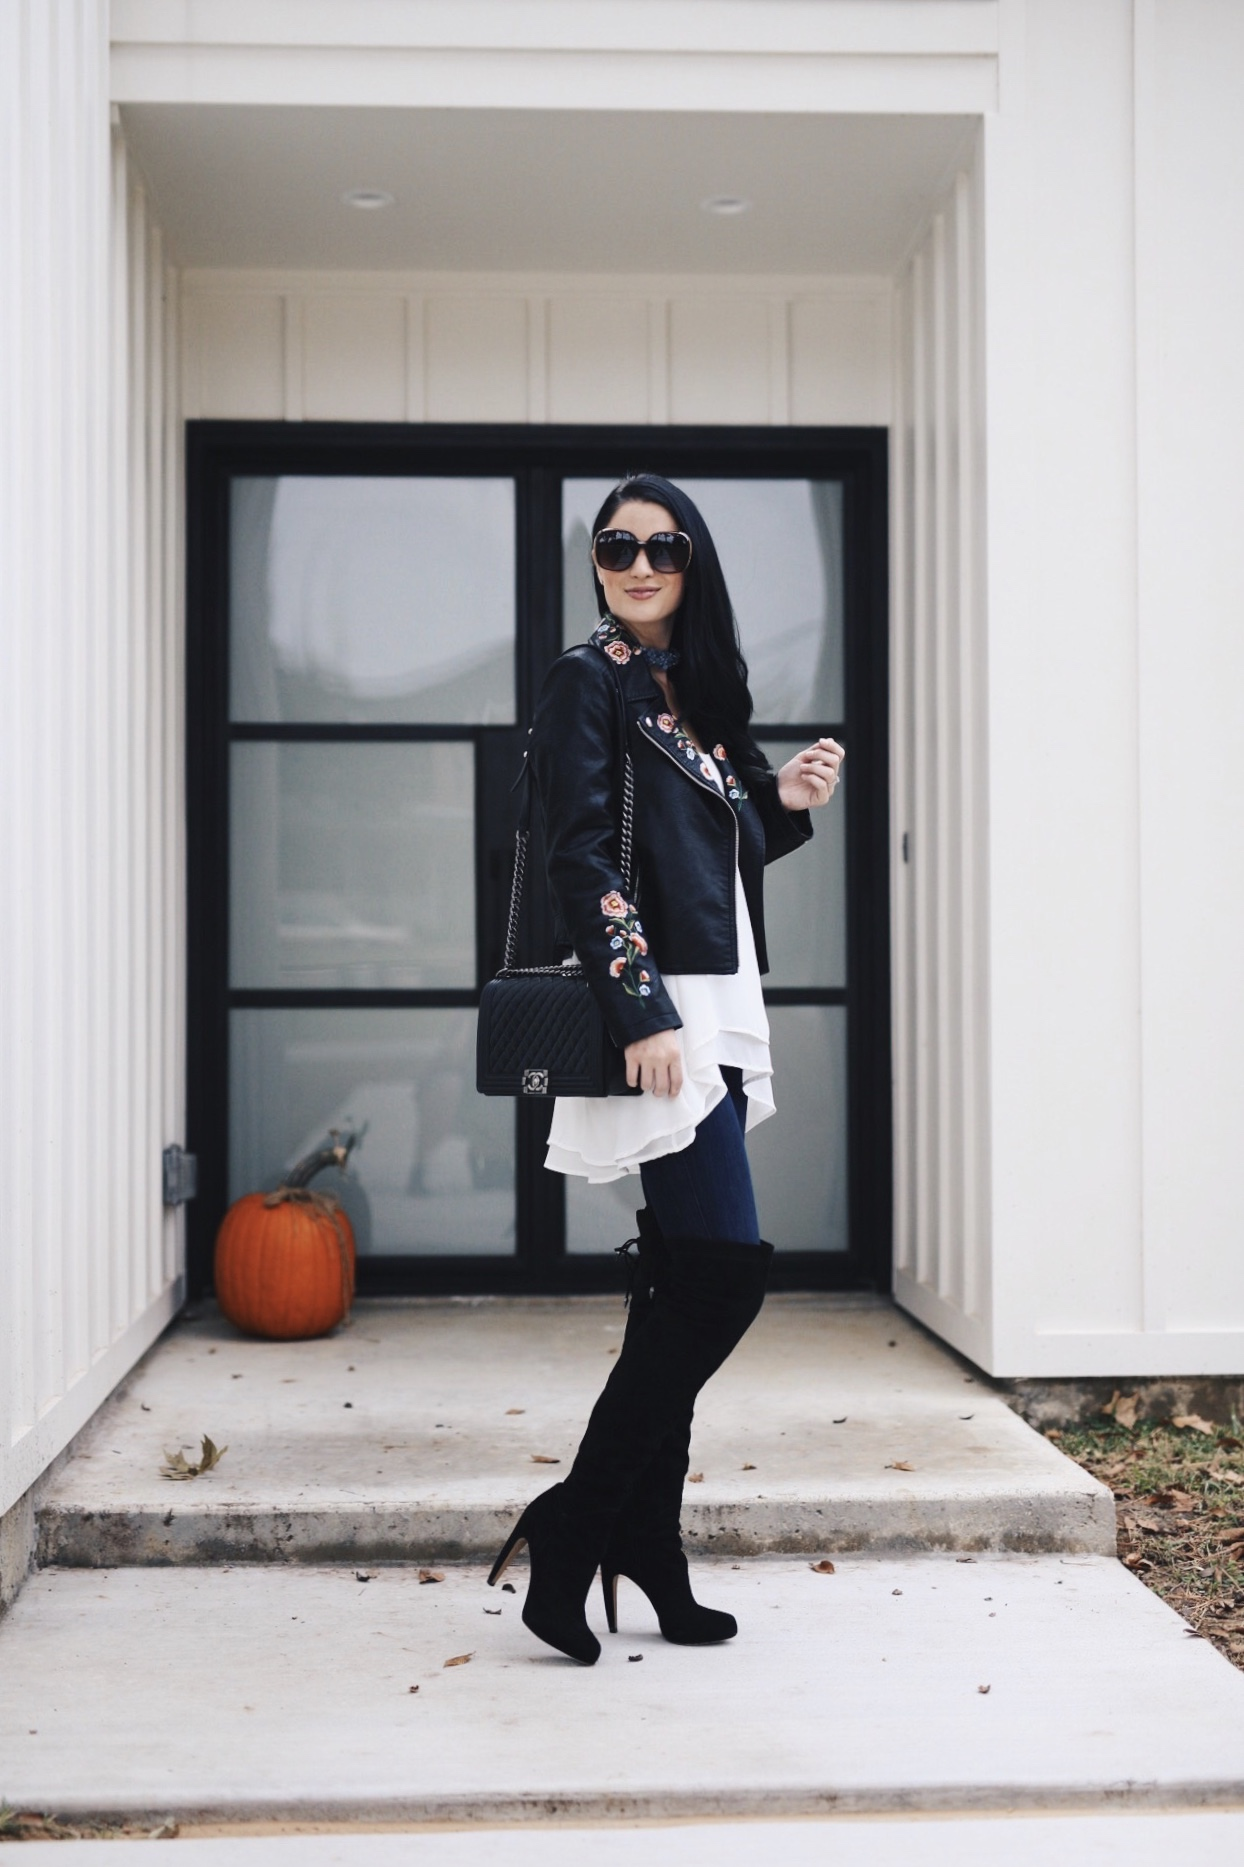 Austin Blogger DTKAustin shares an affordable faux leather, floral embroidered moto jacket from Chicwish under $70!   how to style a faux leather jacket   how to wear a faux leather jacket   affordable faux leather jackets   fall fashion tips   fall outfit ideas   fall style tips   what to wear for fall   cool weather fashion   fashion for fall   style tips for fall   outfit ideas for fall    Dressed to Kill #fallstyle #fauxleather #embroideredjacket